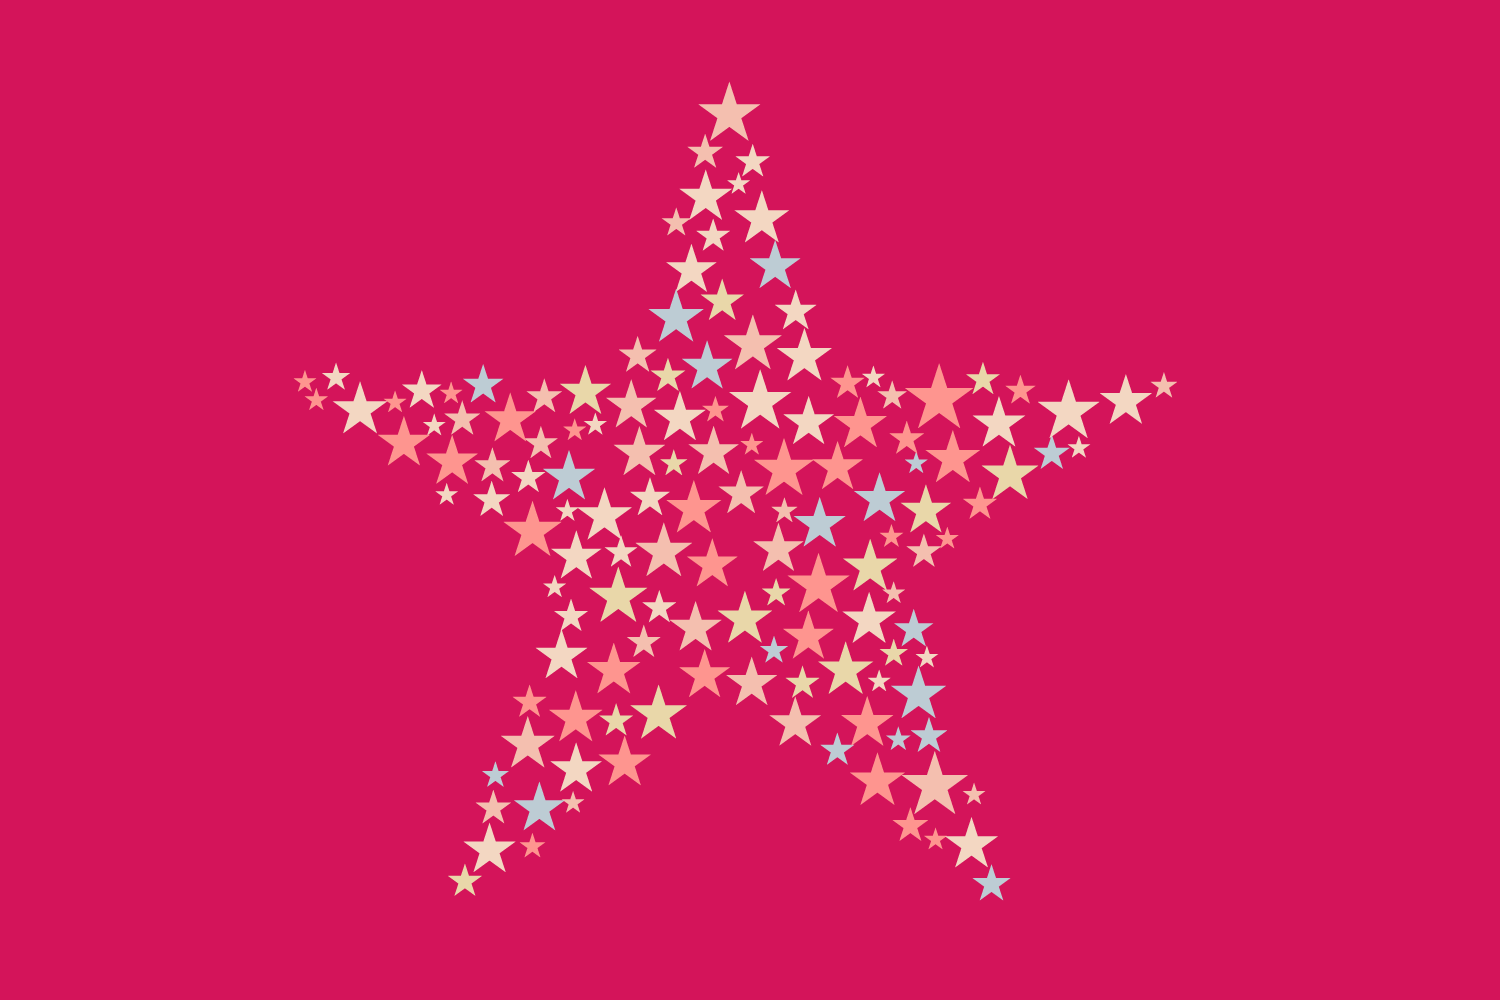 Stars in Star Vector AI, SVG, EPS, PNG, PDF example image 2